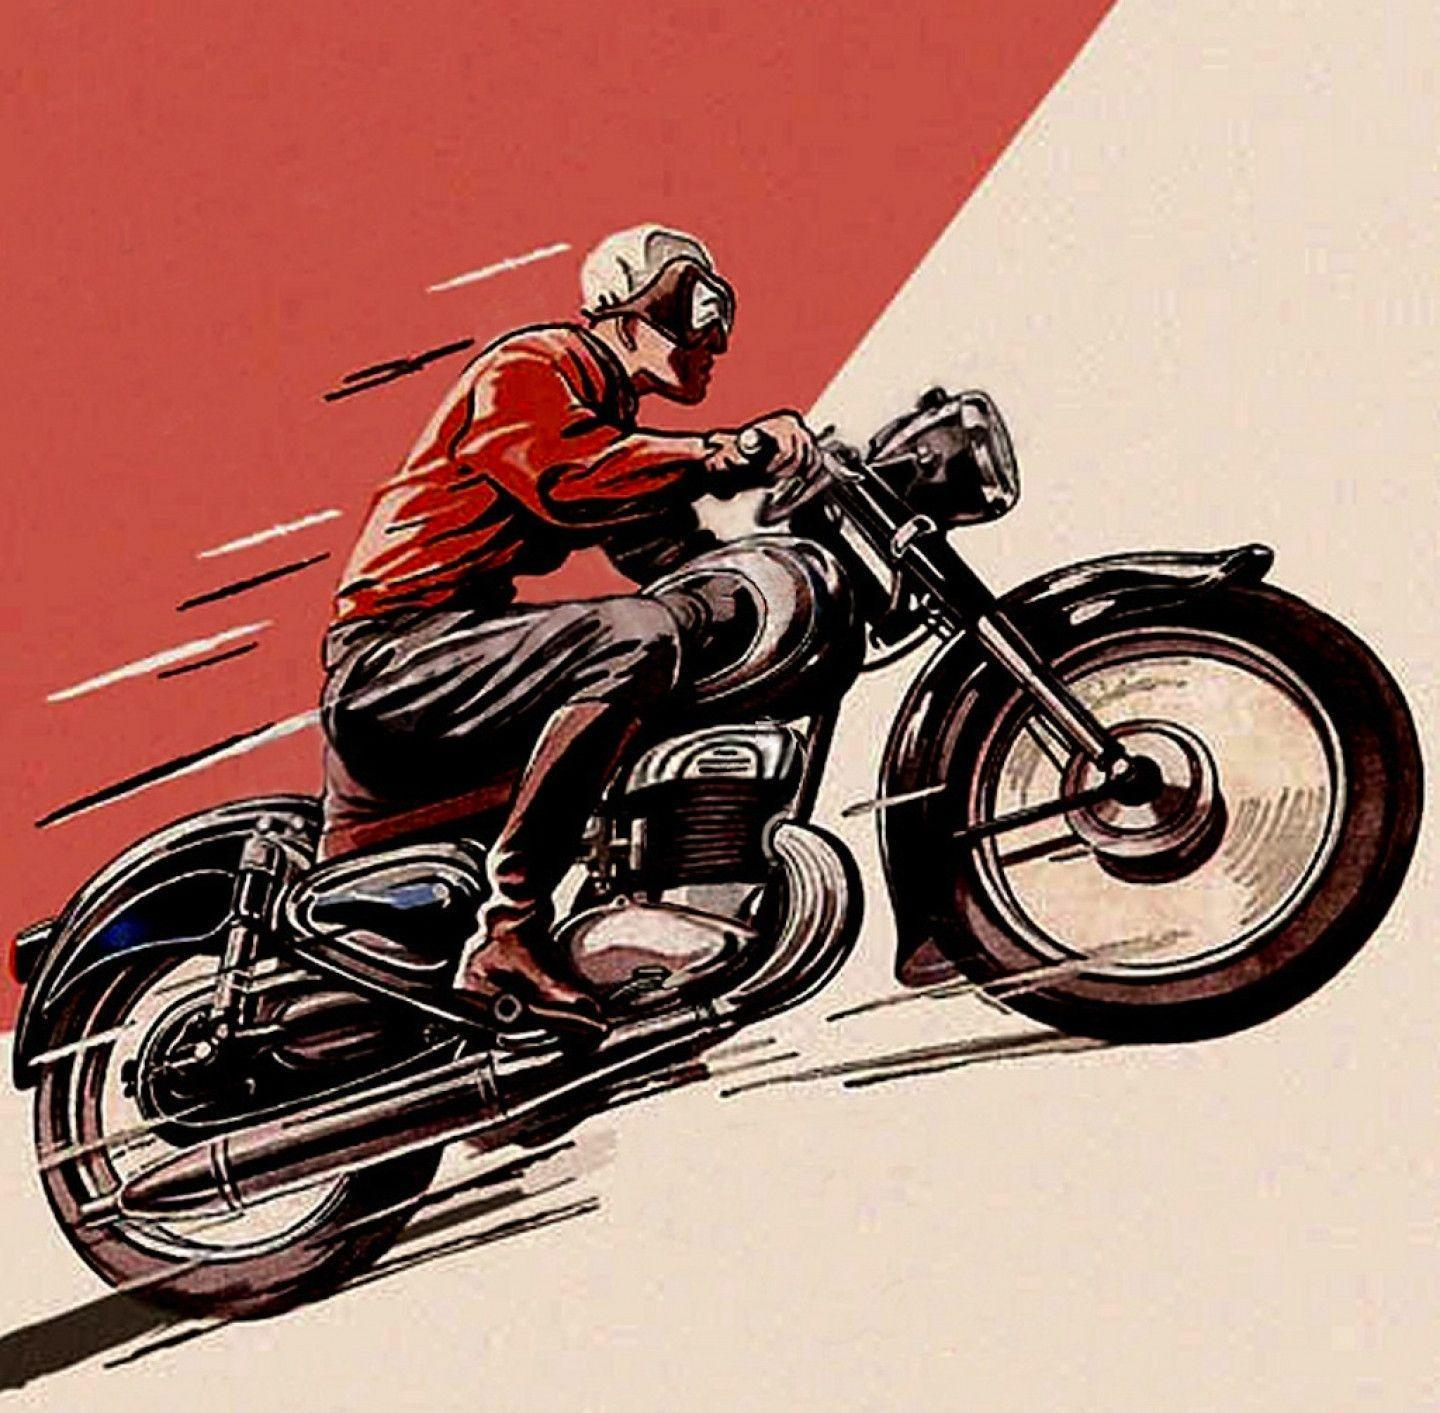 Vintage Motorcycle Posters And Sketches Wallpapers